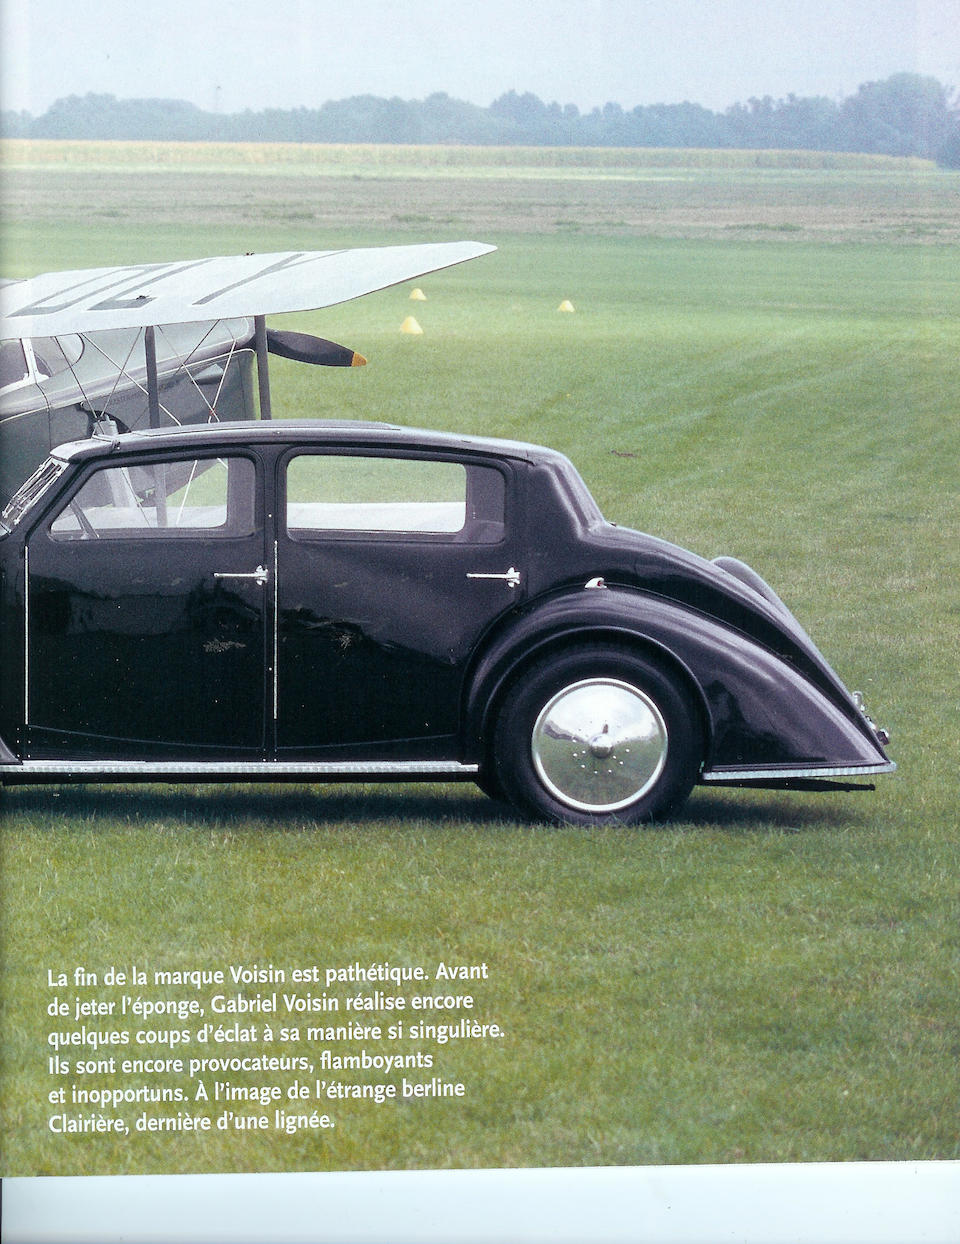 One of two existing, once owned by Gabriel Voisin ,1935 Avions Voisin C28 Clairière  Chassis no. CG 28917 Engine no. 53010